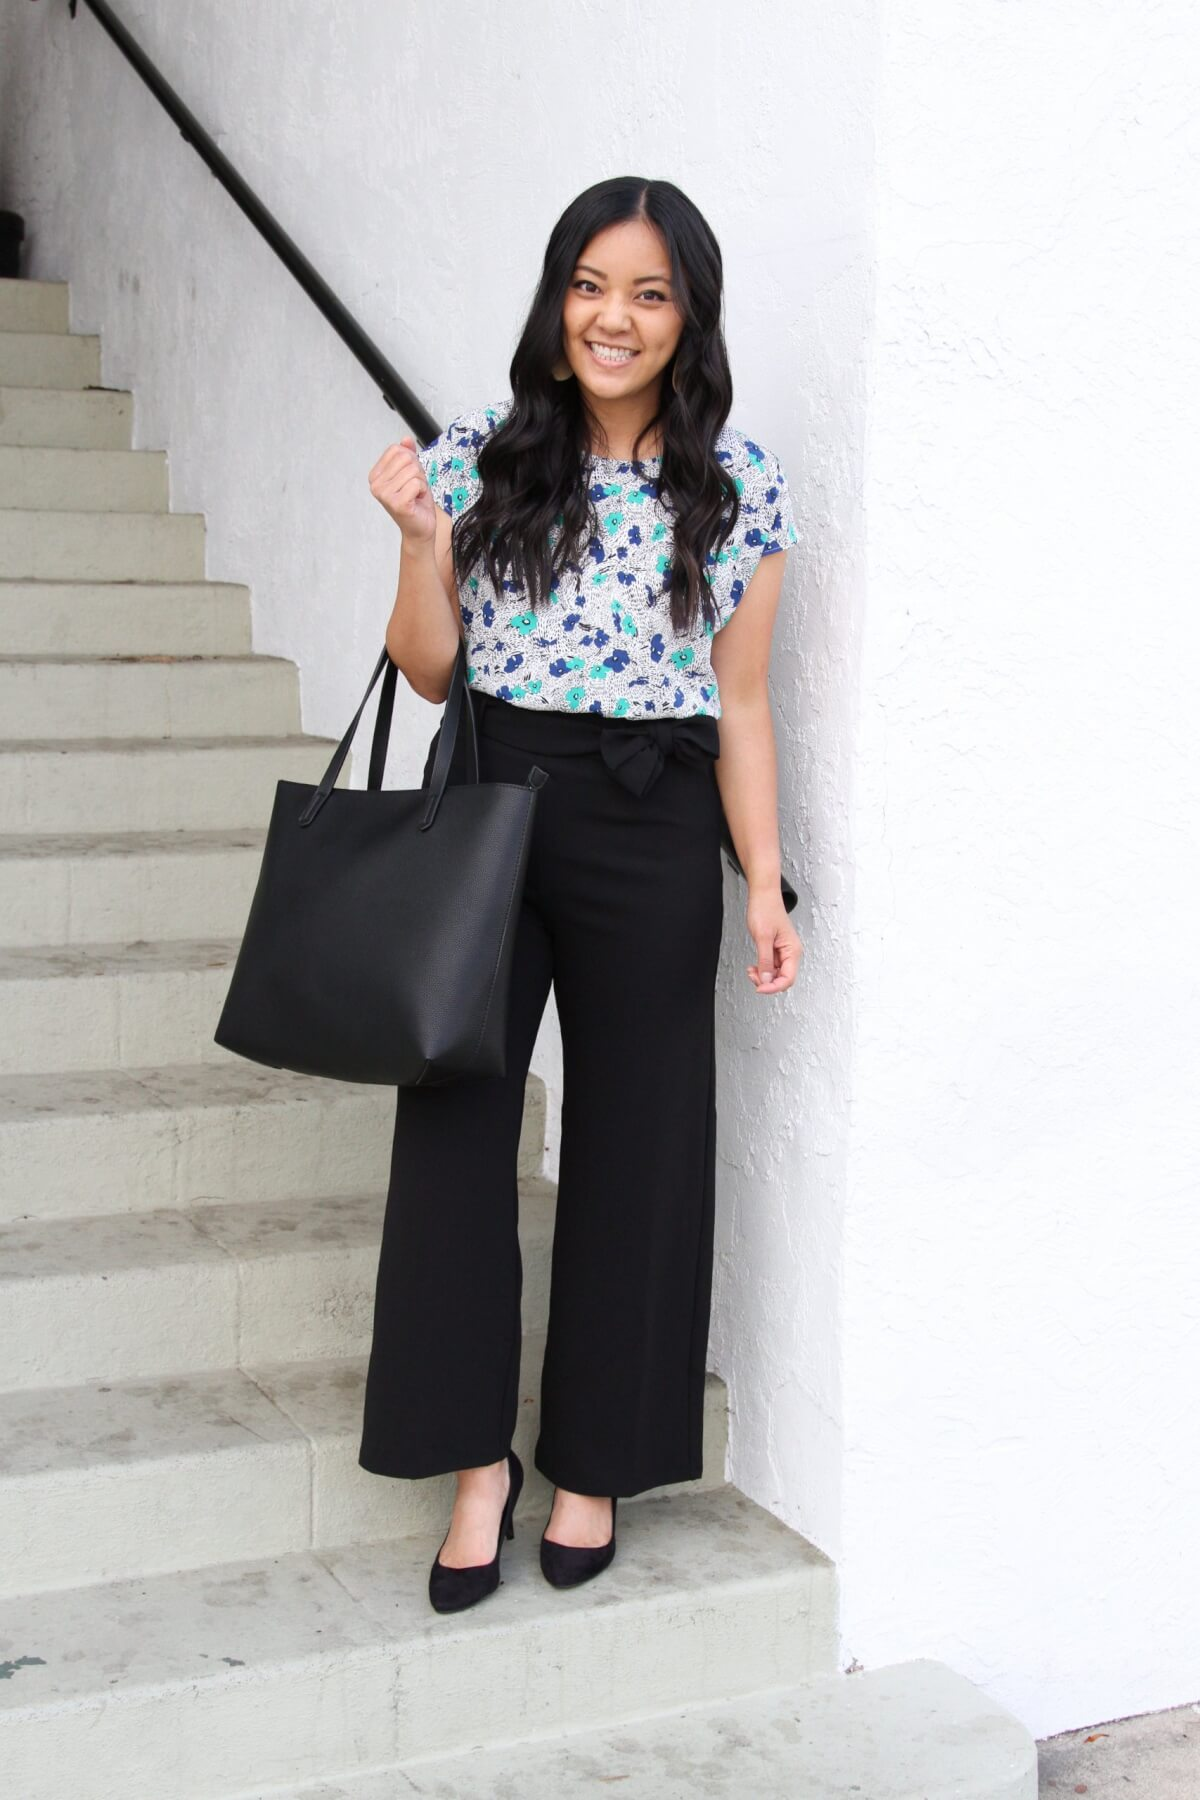 Work Outfit: blue and green floral top + black wide leg tie waist pants + black pumps + statement necklace + black tote